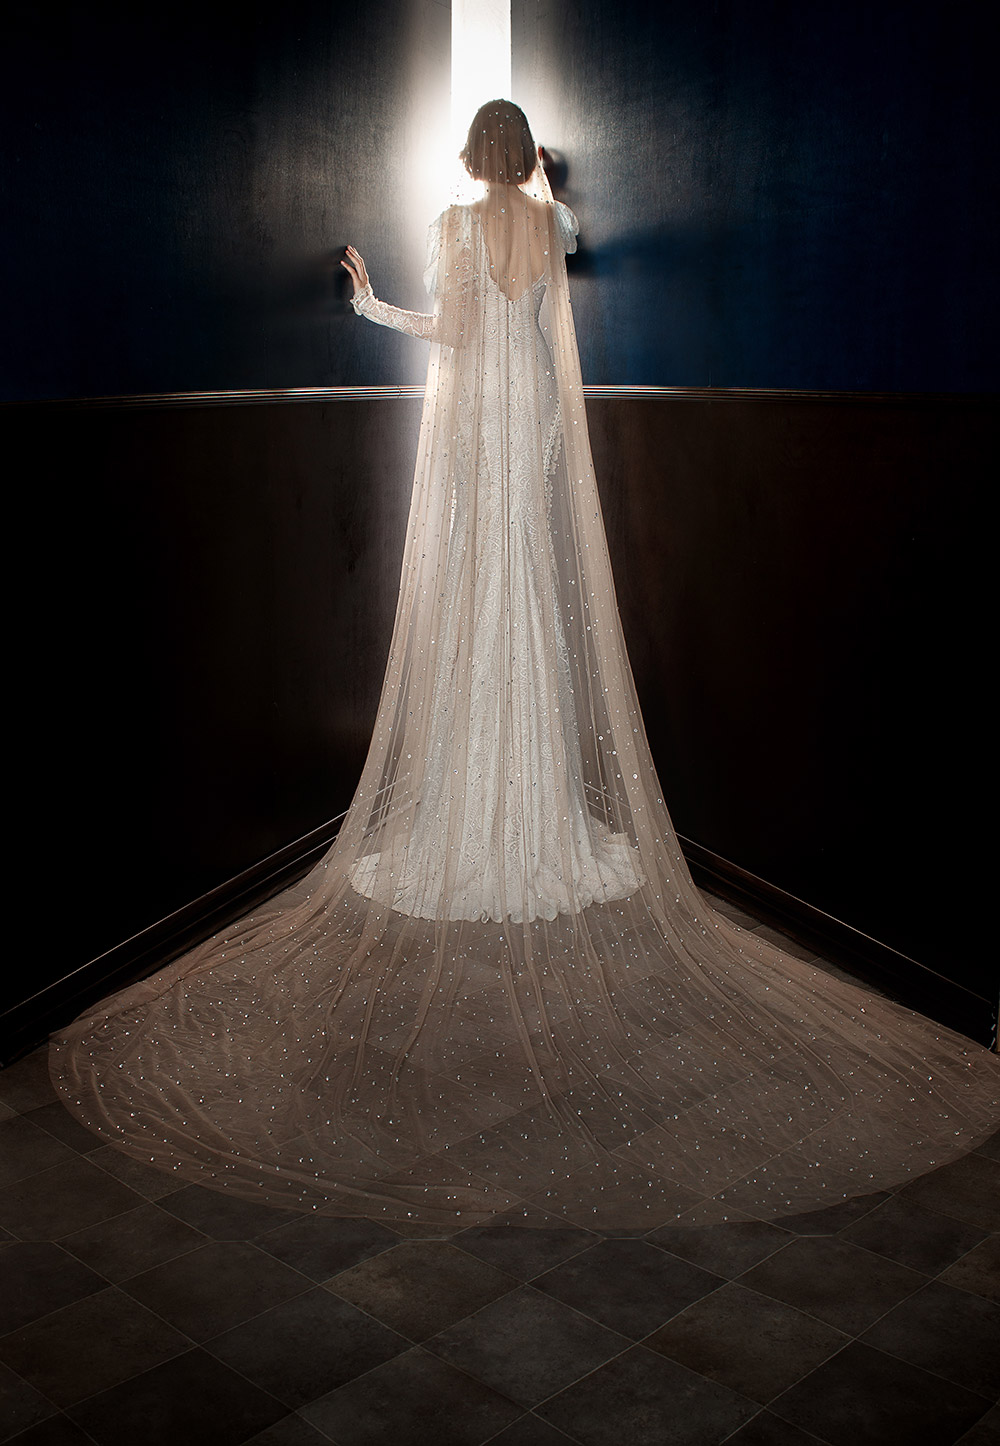 Stardust Veil - Galia Lahav Spring 2018 Bridal Collection. www.theweddingnotebook.com